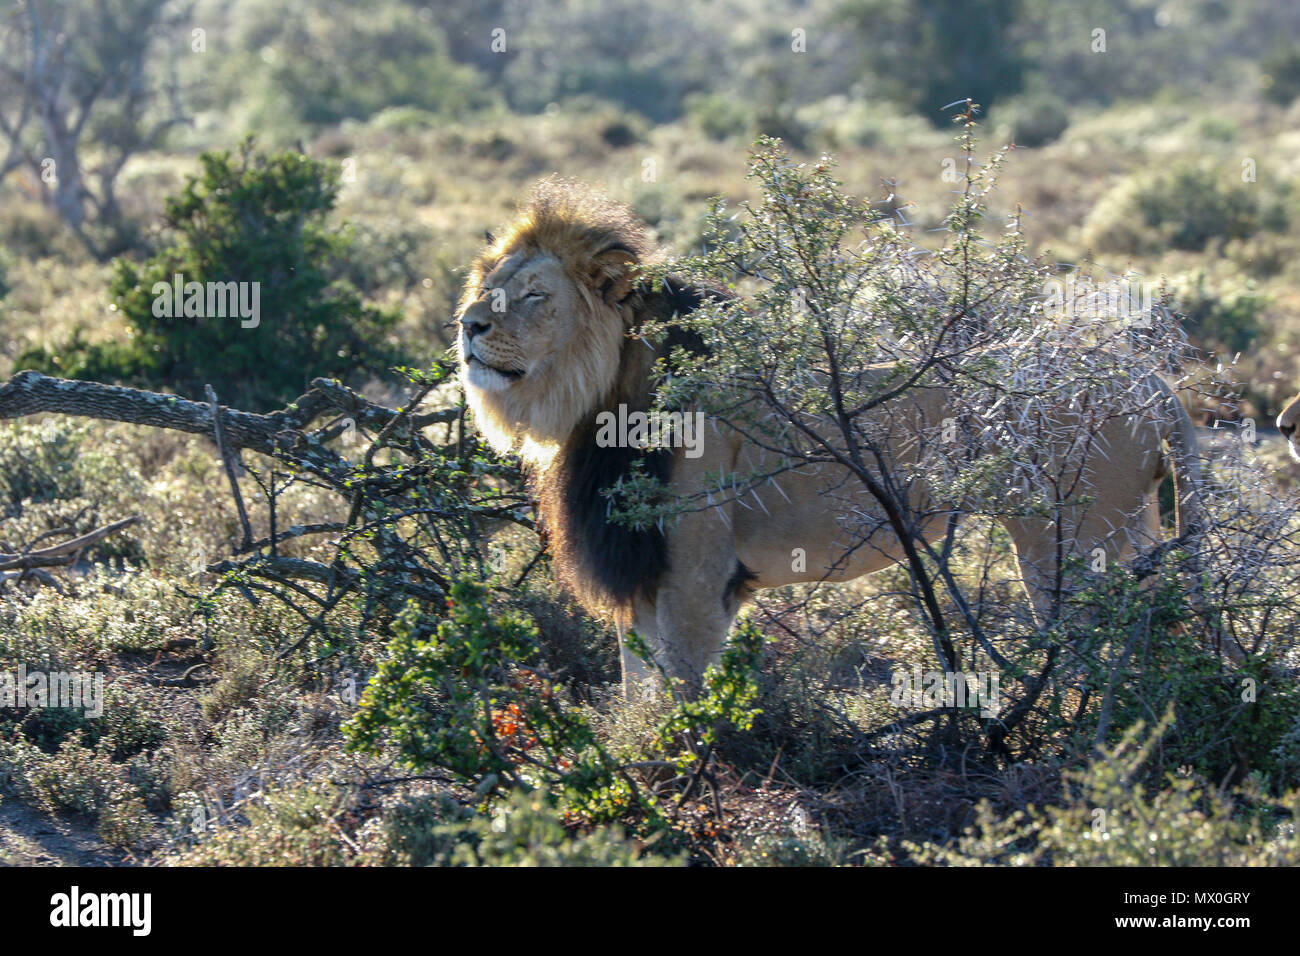 Male lion and fynbos in the Addo Elephant National Park amongst acacia , eastern cape, south africa Stock Photo